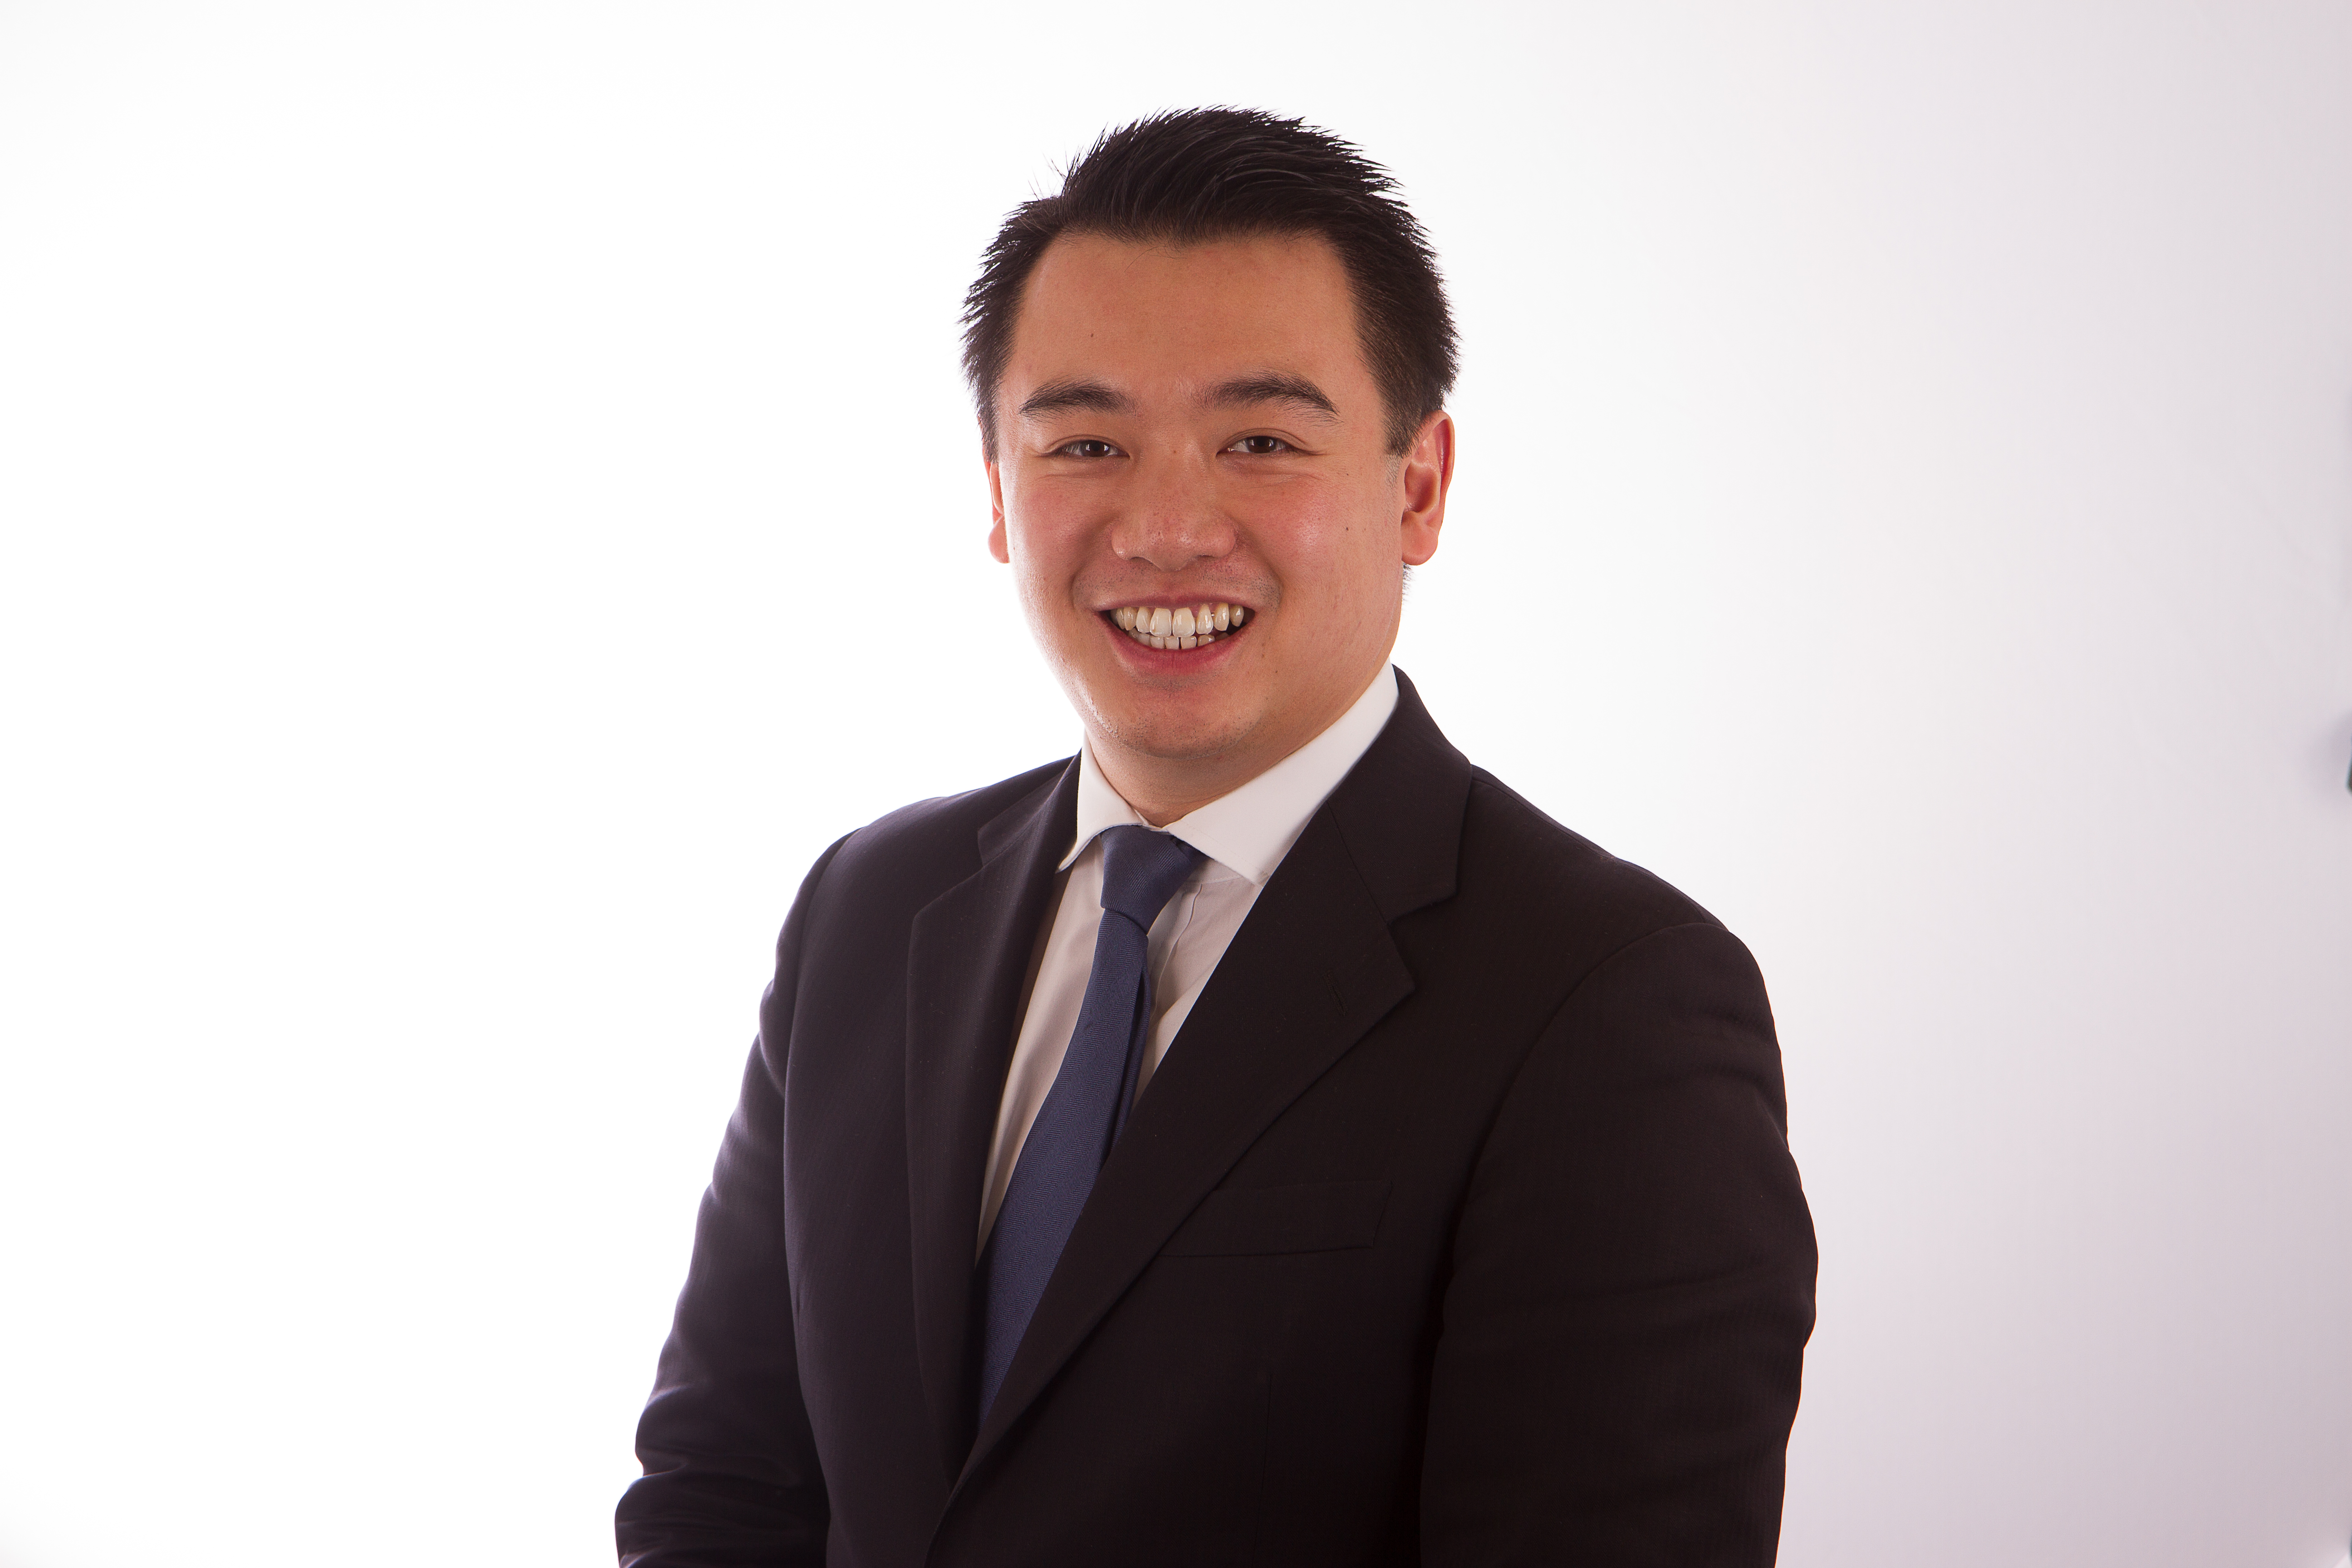 The profile picture of newly elected British lawmaker Alan Mak.